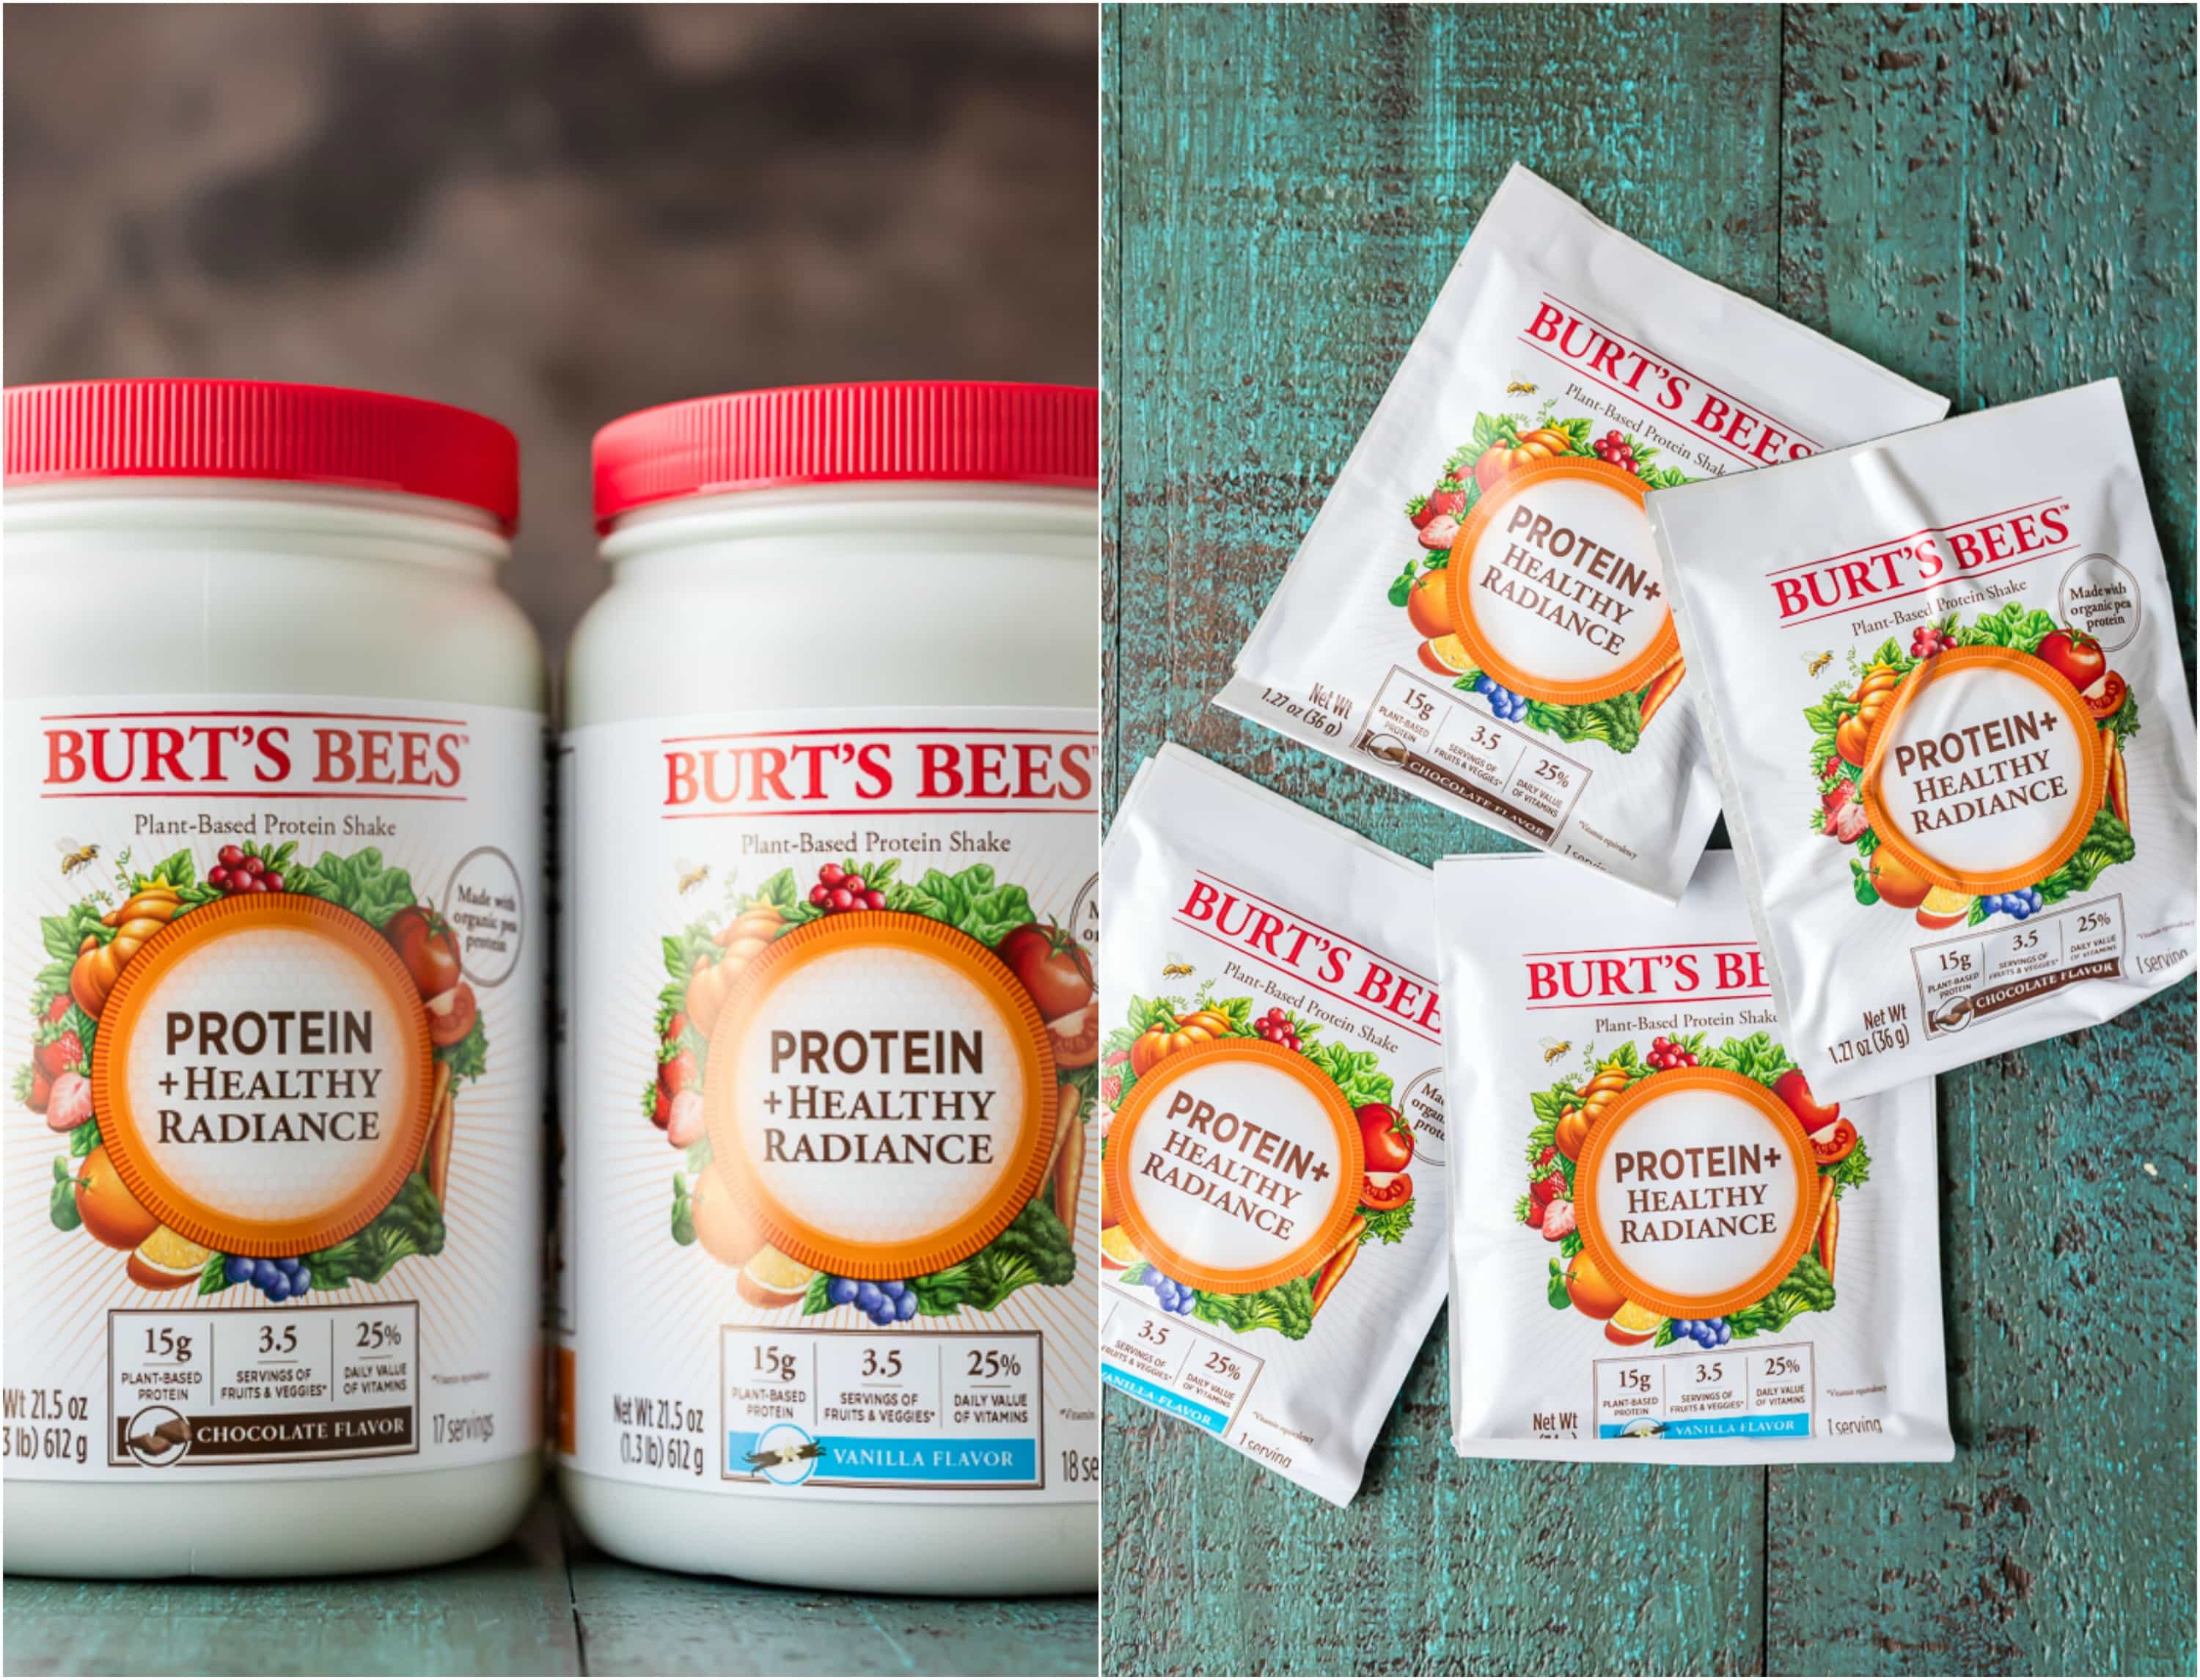 bottles and packets of Burt's Bees protein + healthy radiance powder